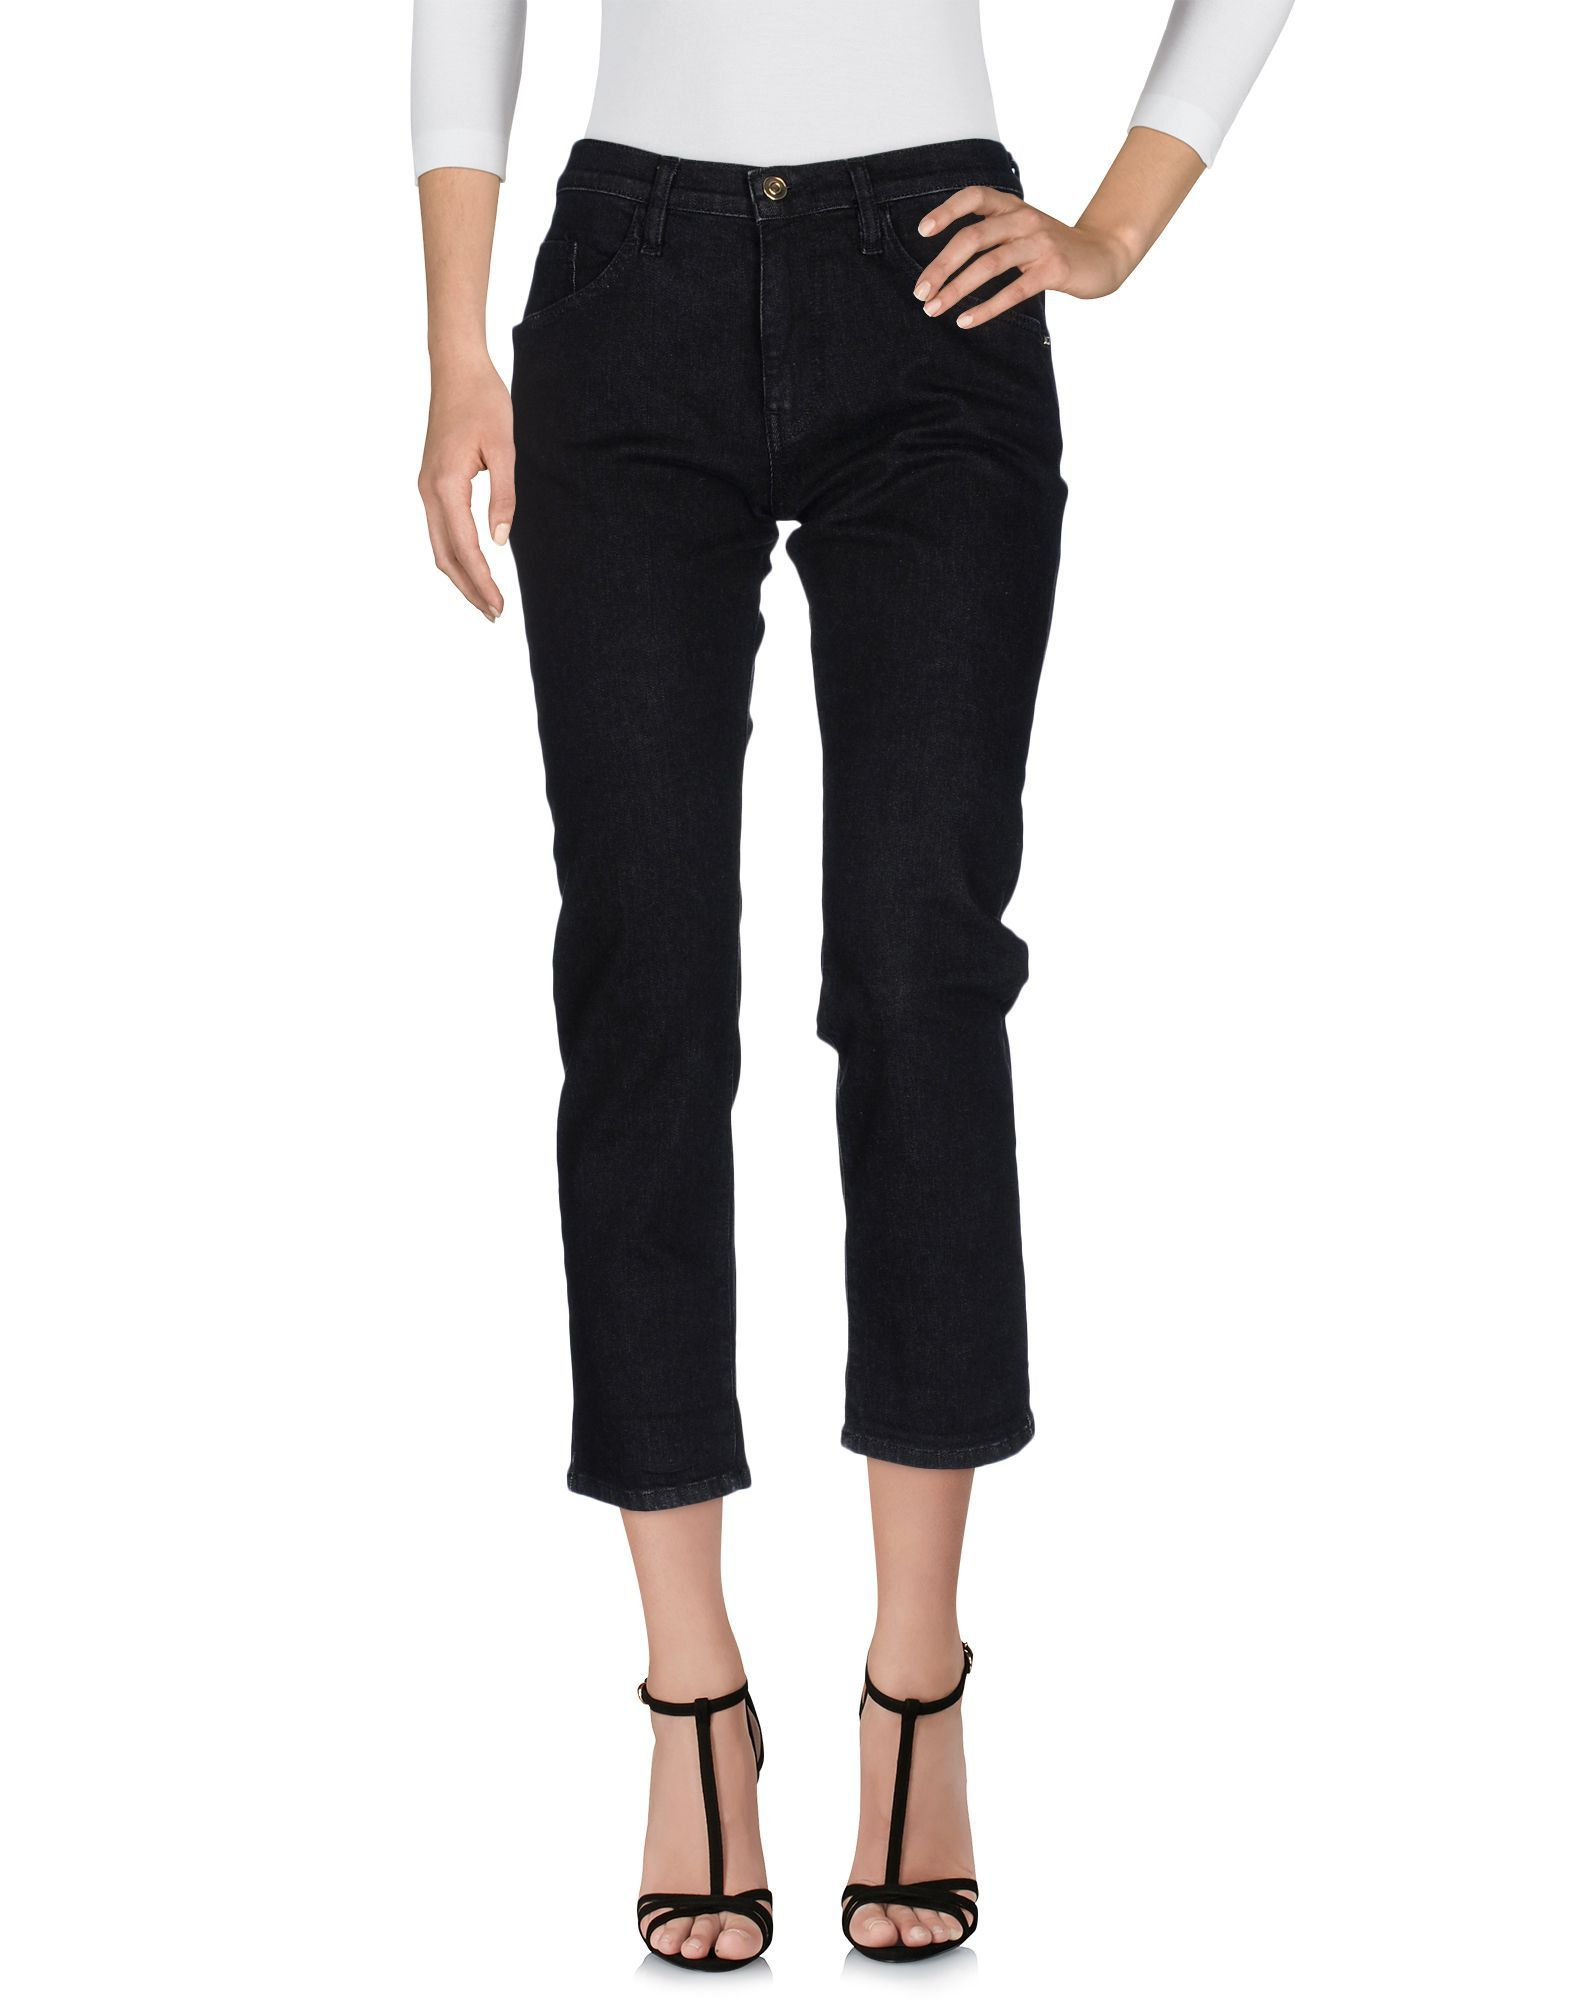 Carla G. Woman Black Denim trousers